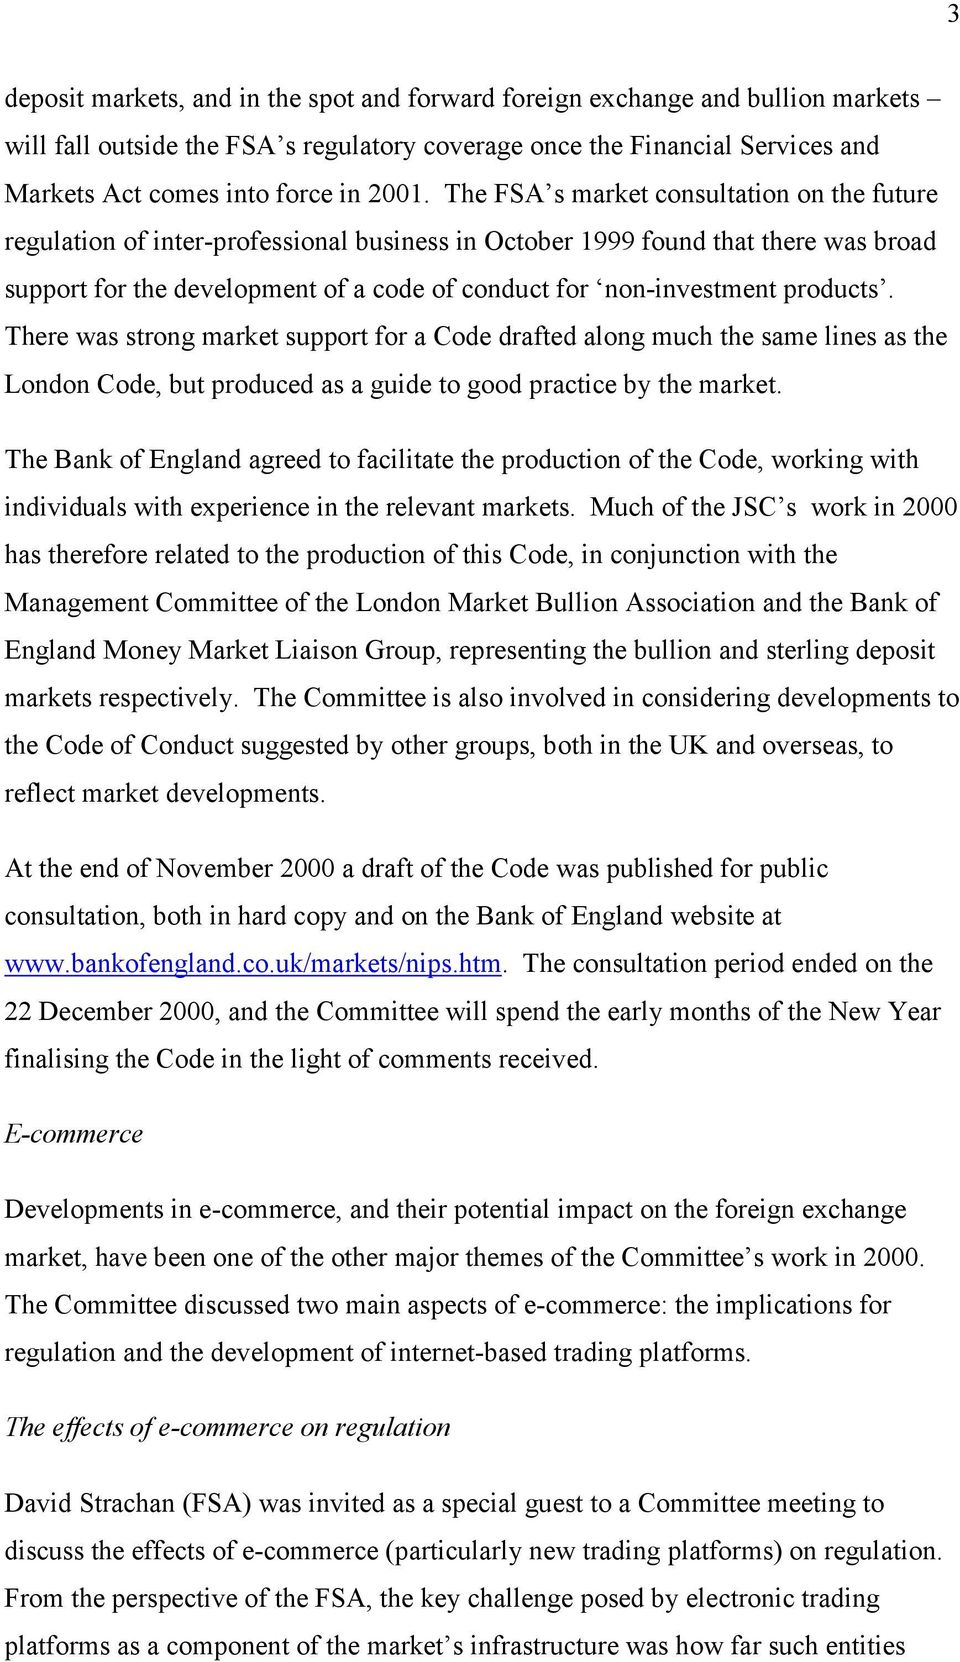 non-investment products. There was strong market support for a Code drafted along much the same lines as the London Code, but produced as a guide to good practice by the market.